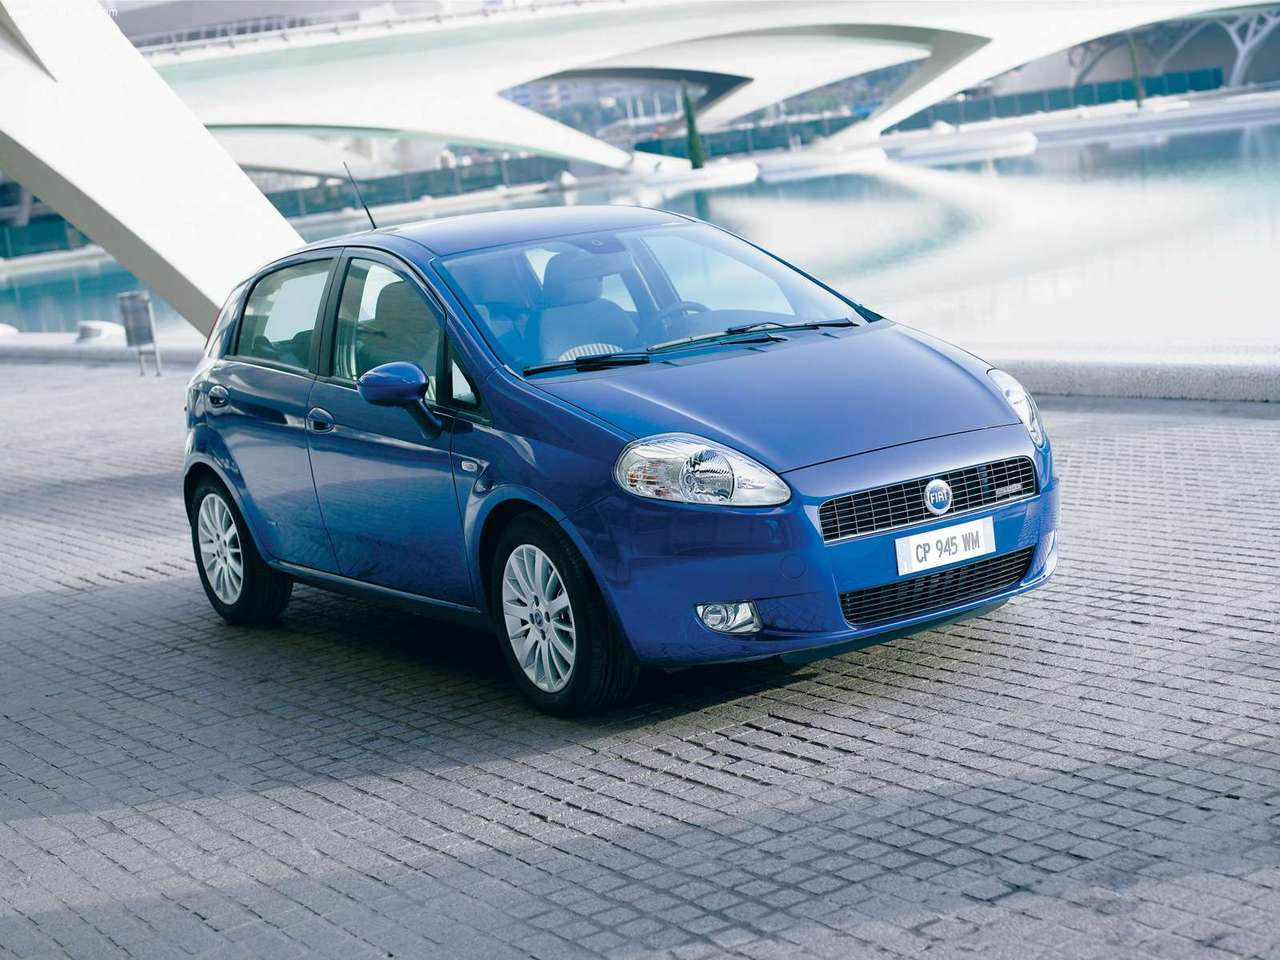 2005 fiat grande punto 1 9 multijet related infomation specifications weili automotive network. Black Bedroom Furniture Sets. Home Design Ideas